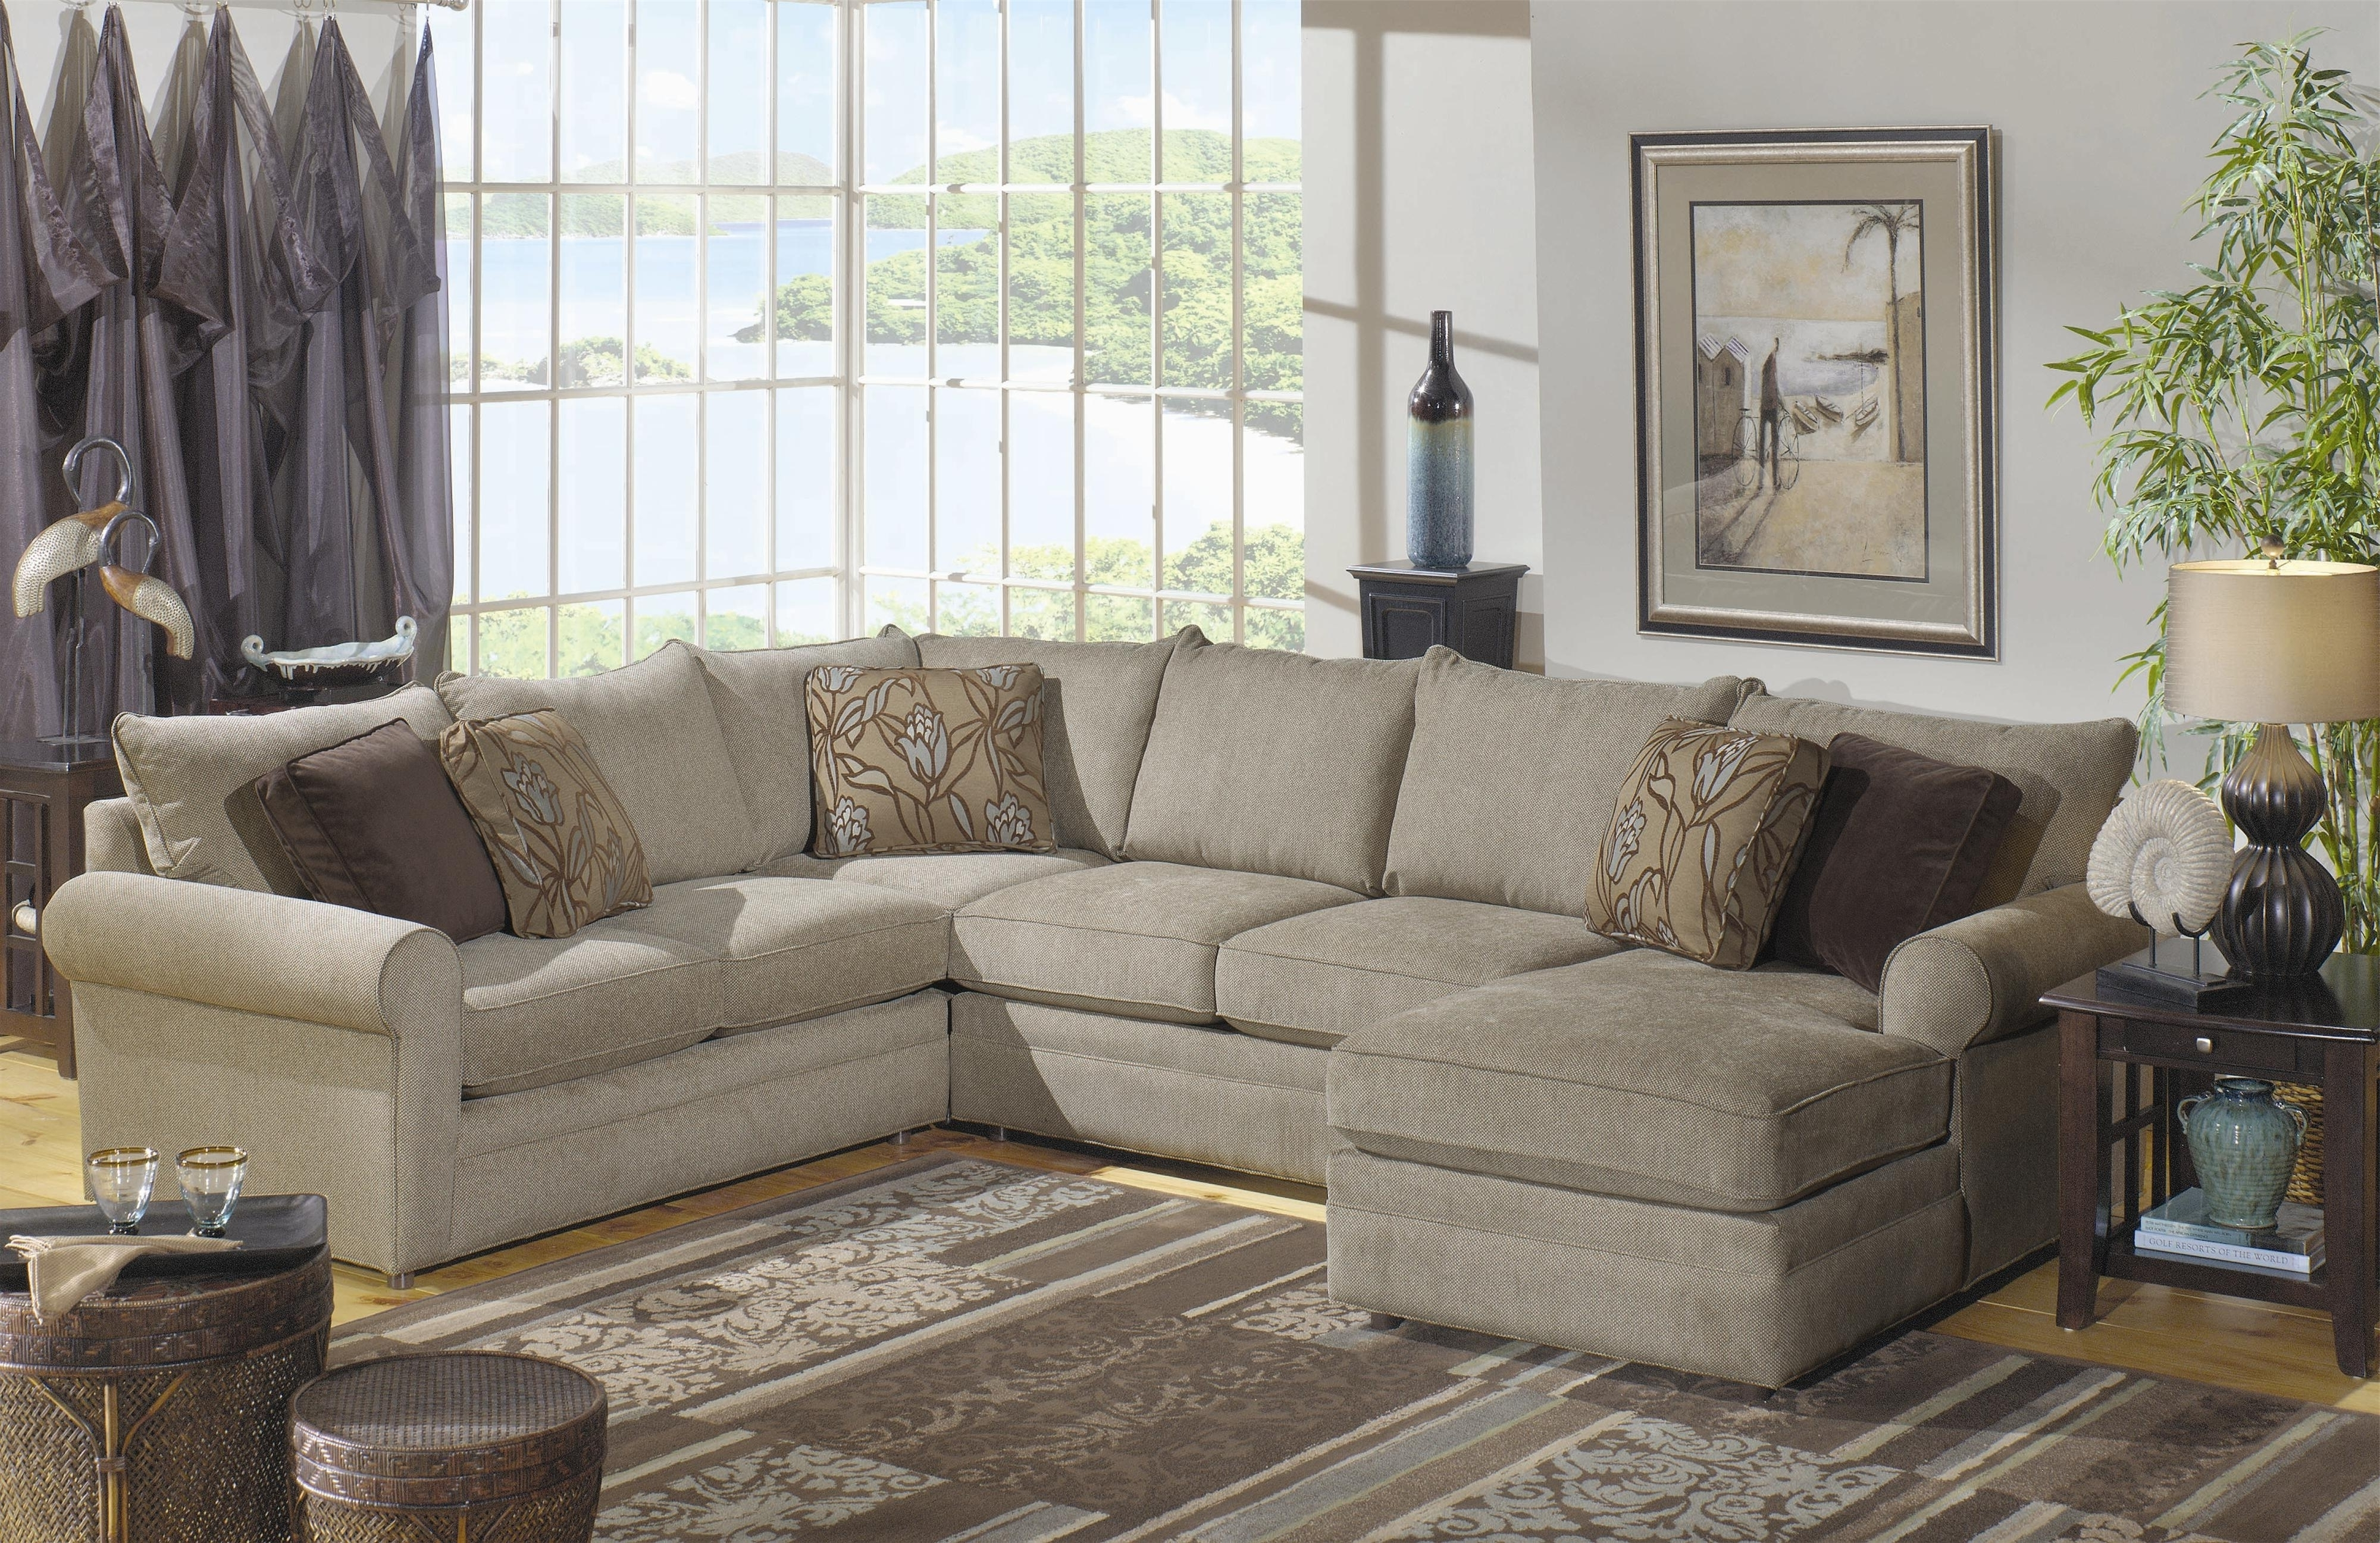 Favorite Gallery Craftsman Sectional Sofa – Mediasupload In Craftsman Sectional Sofas (View 5 of 15)